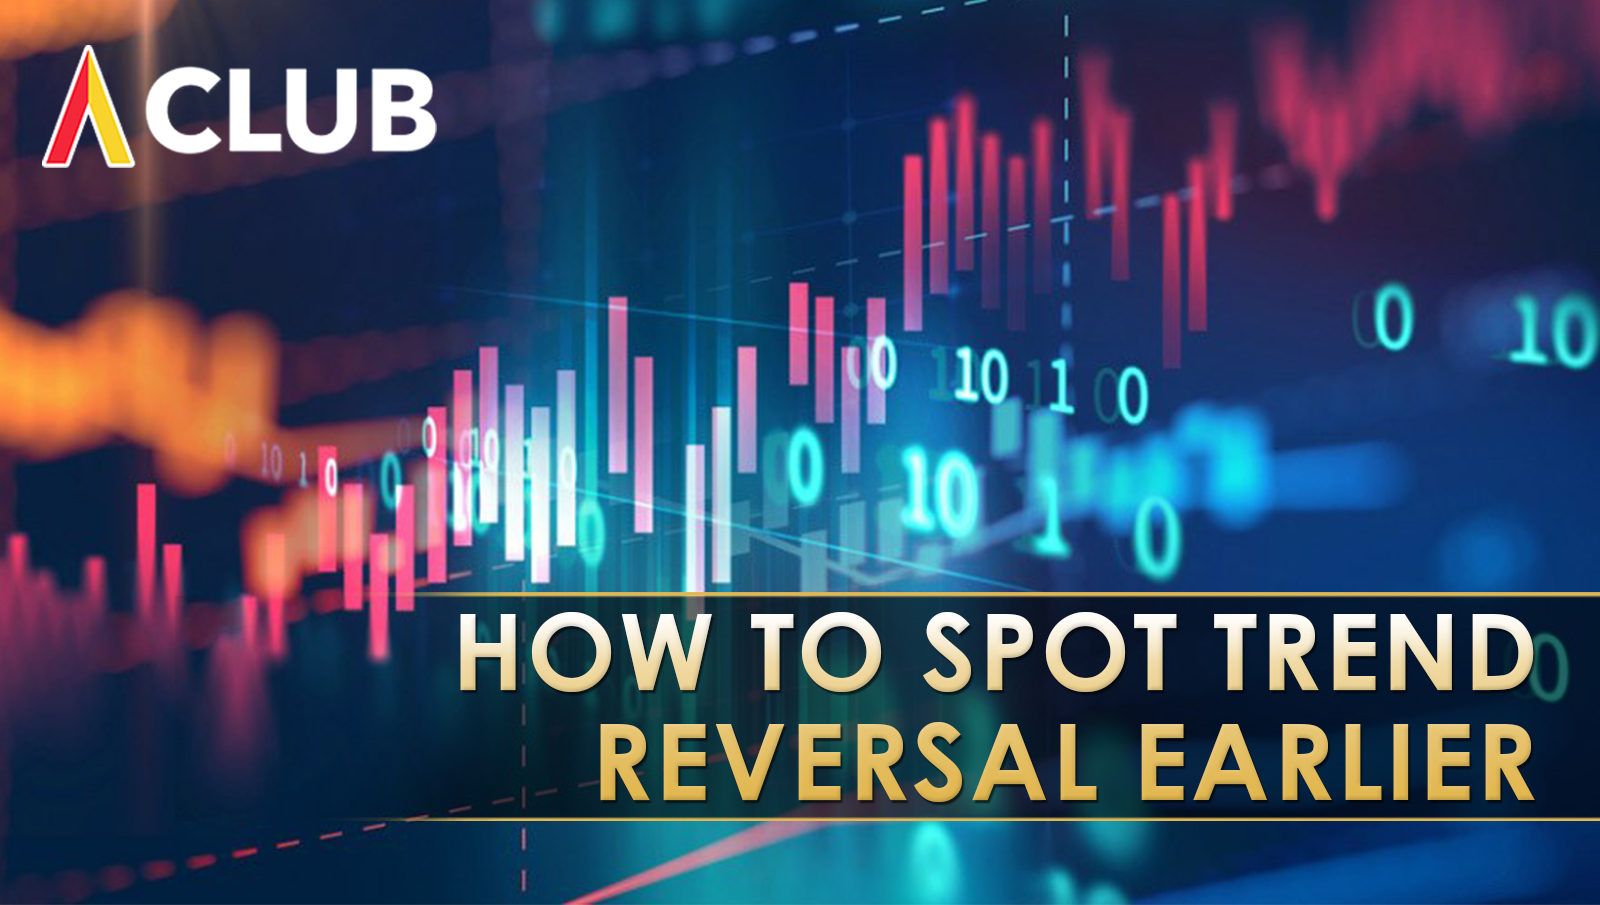 HOW TO SPOT TREND REVERSAL EARLIER